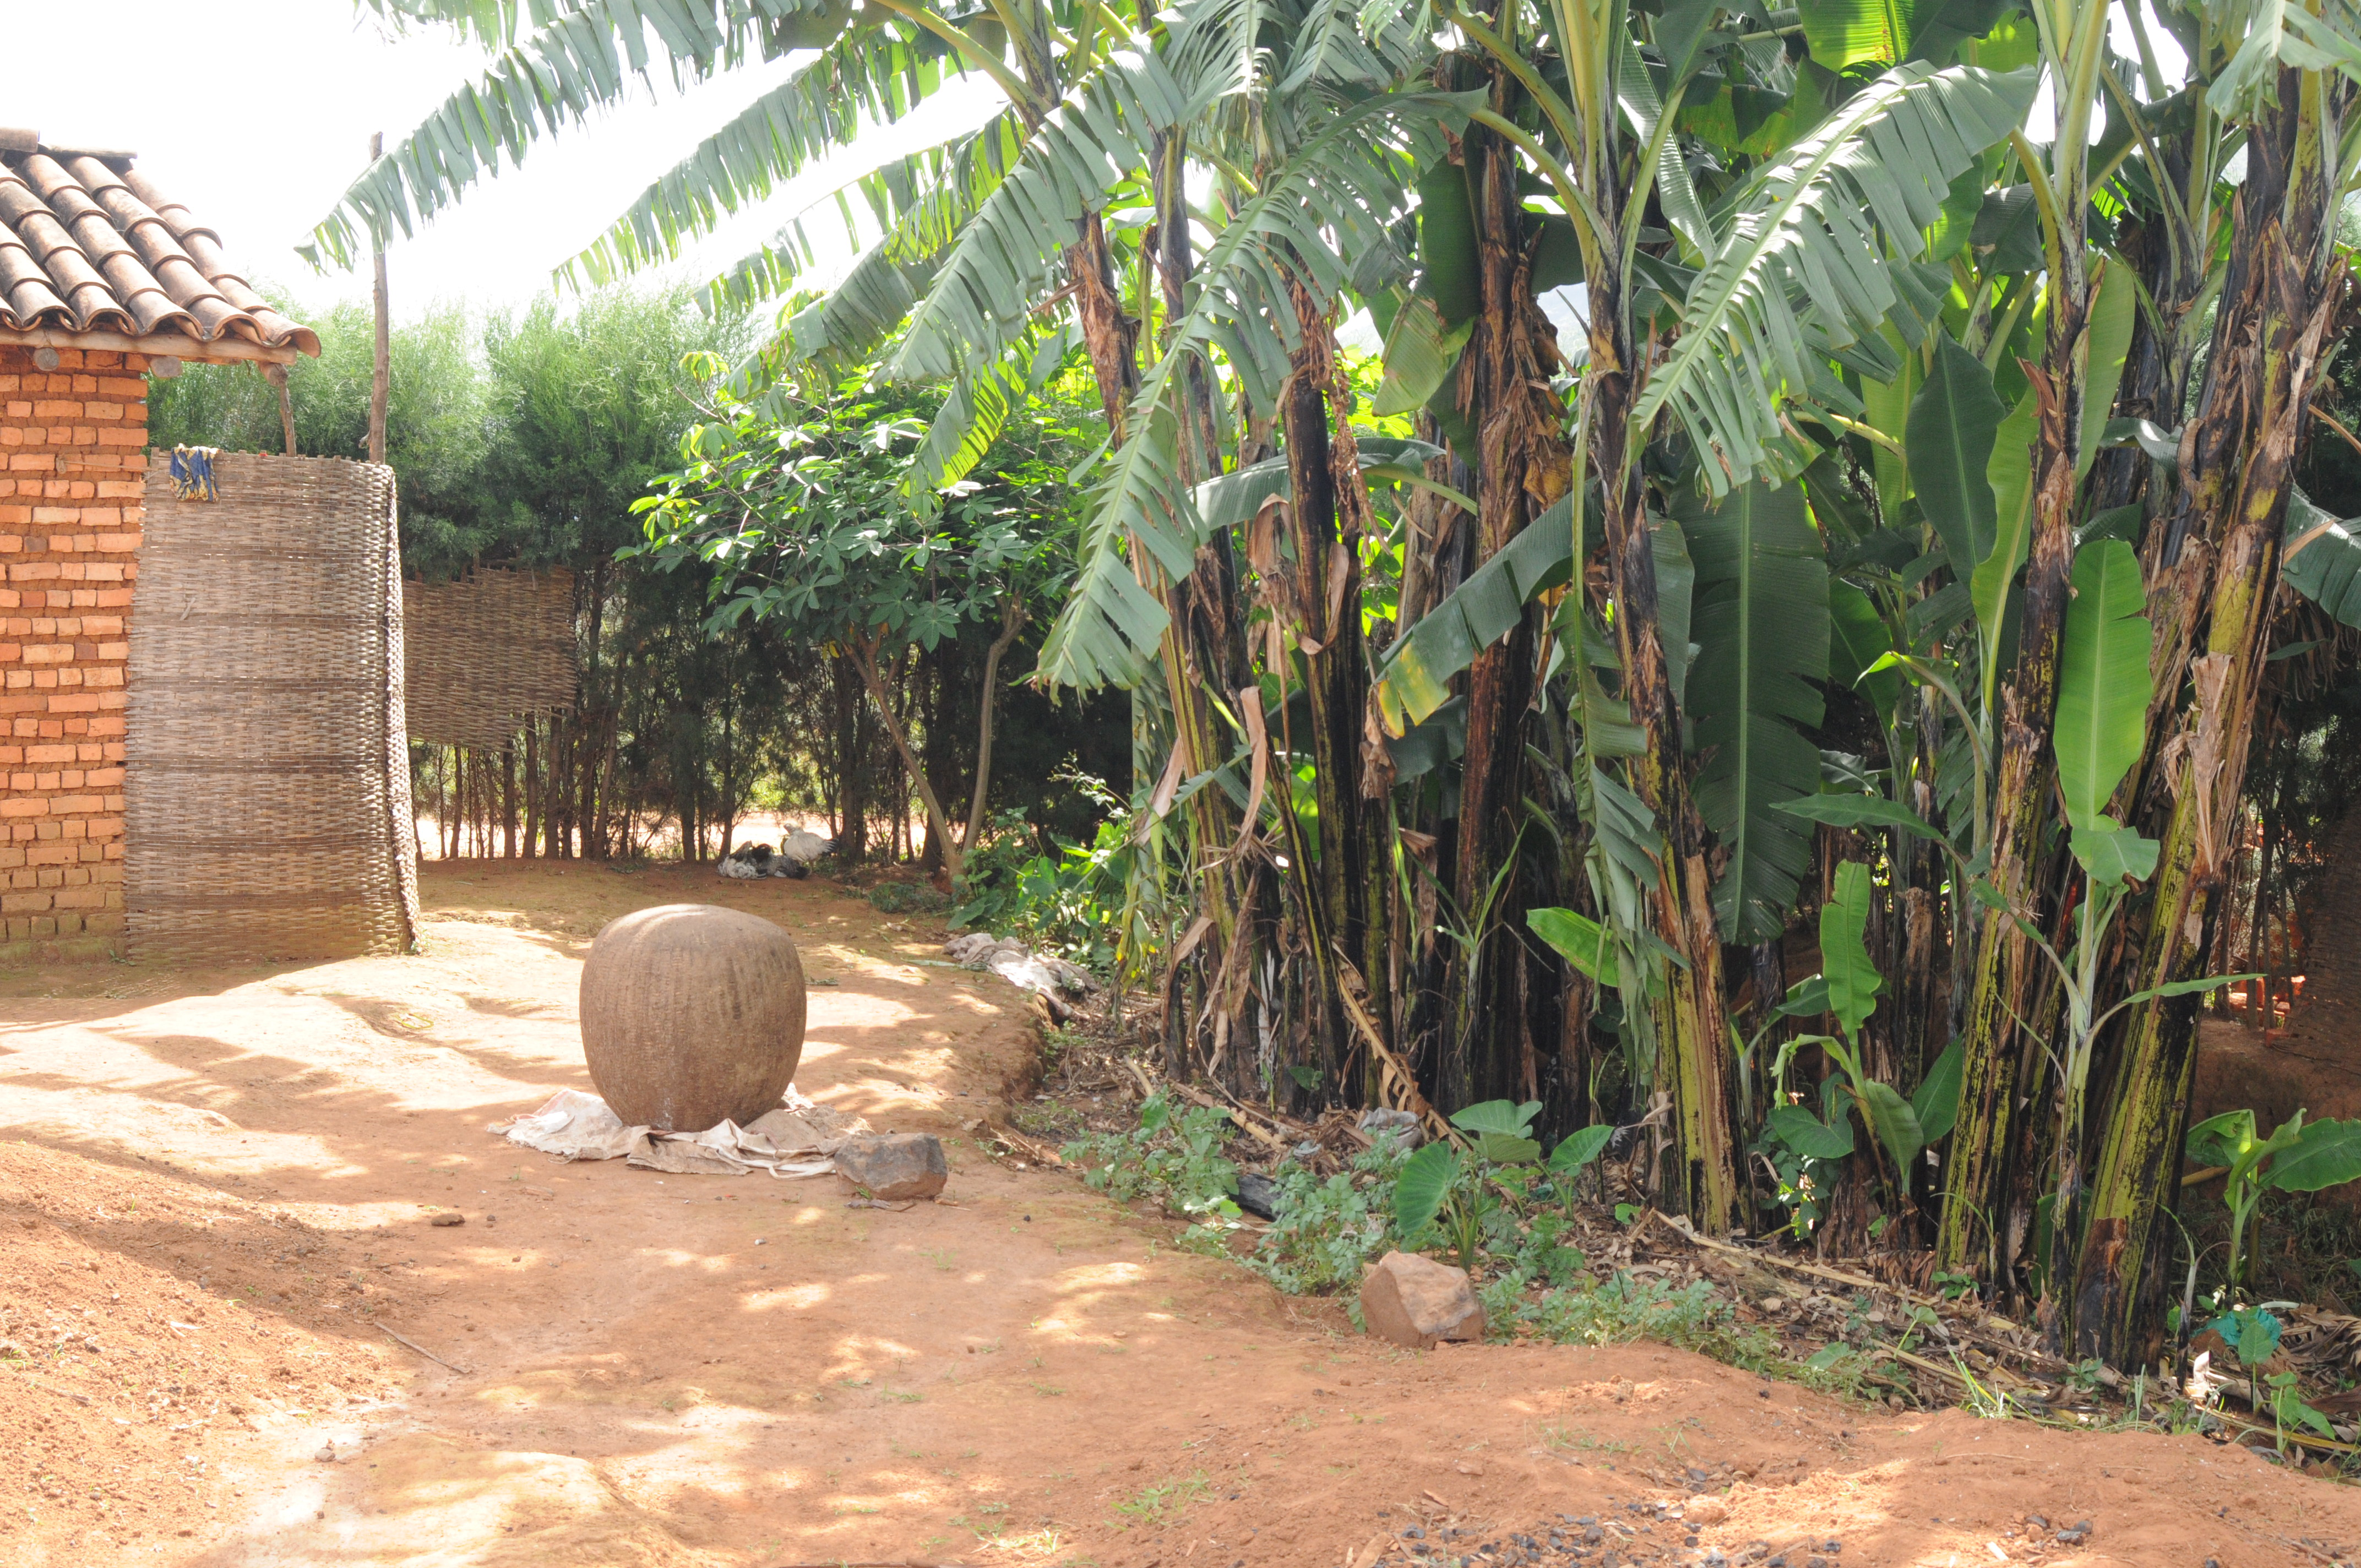 Backyard Shower File Backyard Of A Household With Banana Trees And Shower